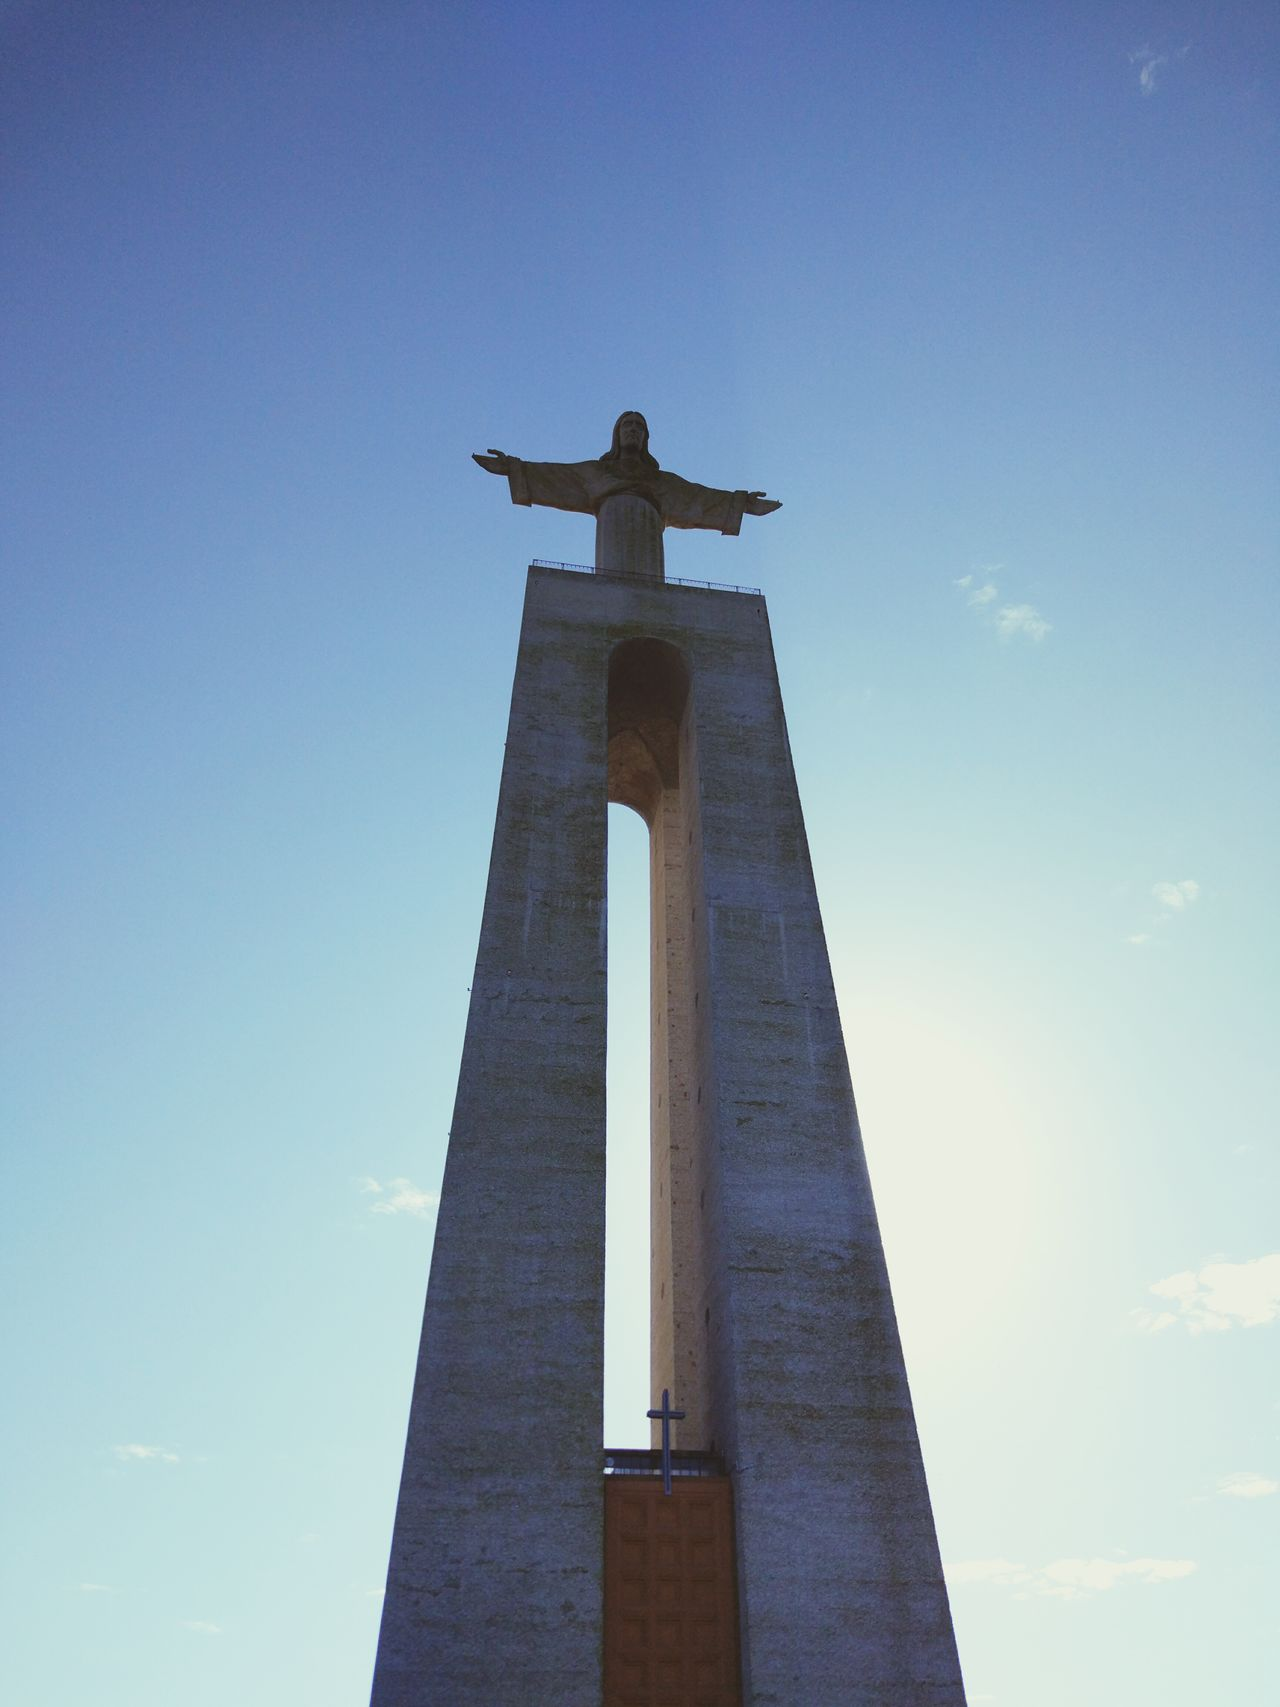 Christ the King Blue City Sky Travel History Archival Monument Architecture Built Structure Business Finance And Industry Travel Destinations Low Angle View Bell No People Night Clock Face Outdoors Portugal Lisbon Lisboa Portugal Christ King Rei Church